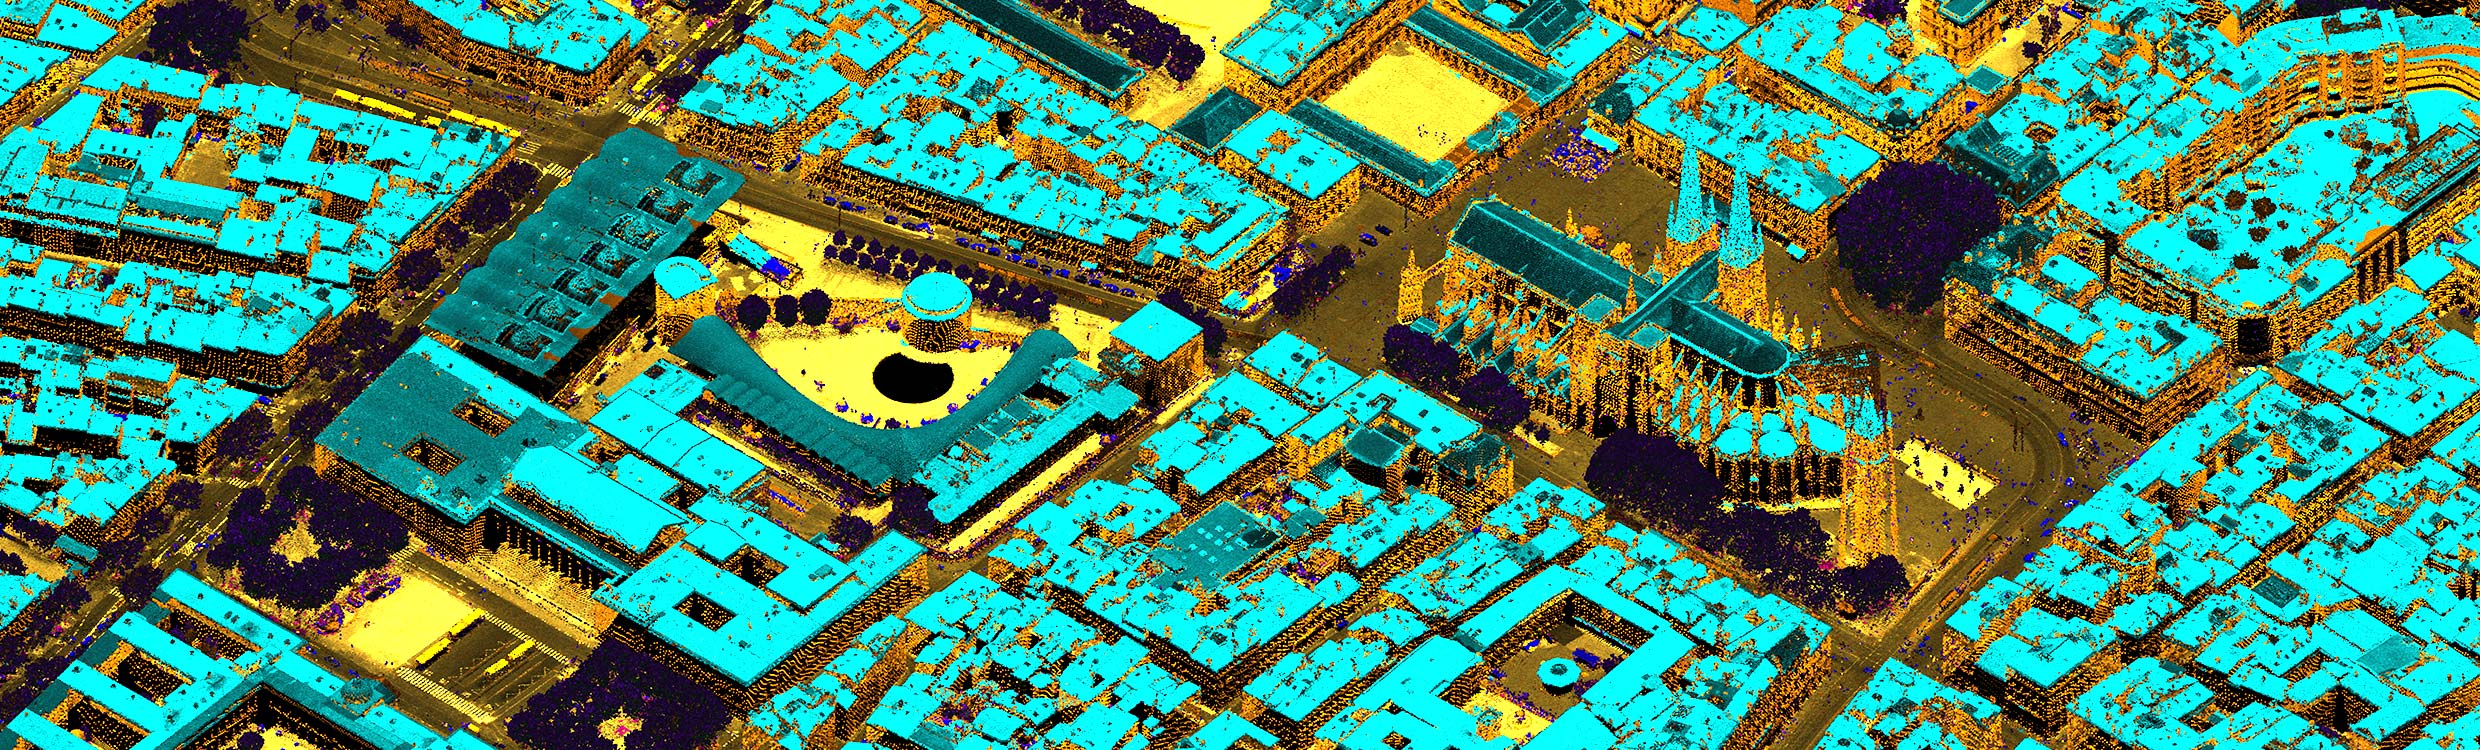 A new era of airborne city mapping | Leica Geosystems City Mapping on